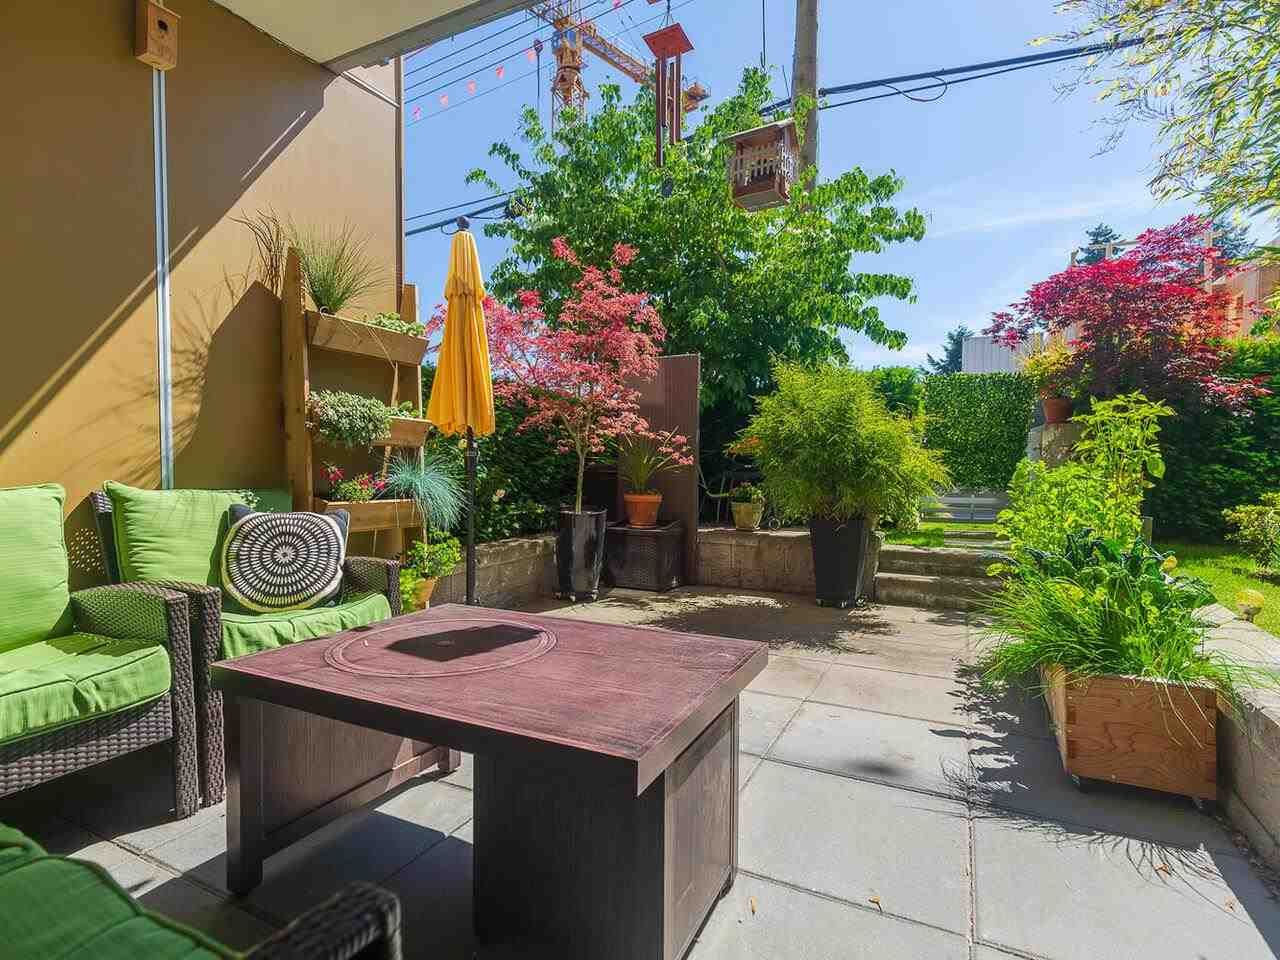 """Main Photo: 9 221 E 3RD Street in North Vancouver: Lower Lonsdale Condo for sale in """"ORIZON"""" : MLS®# R2589678"""